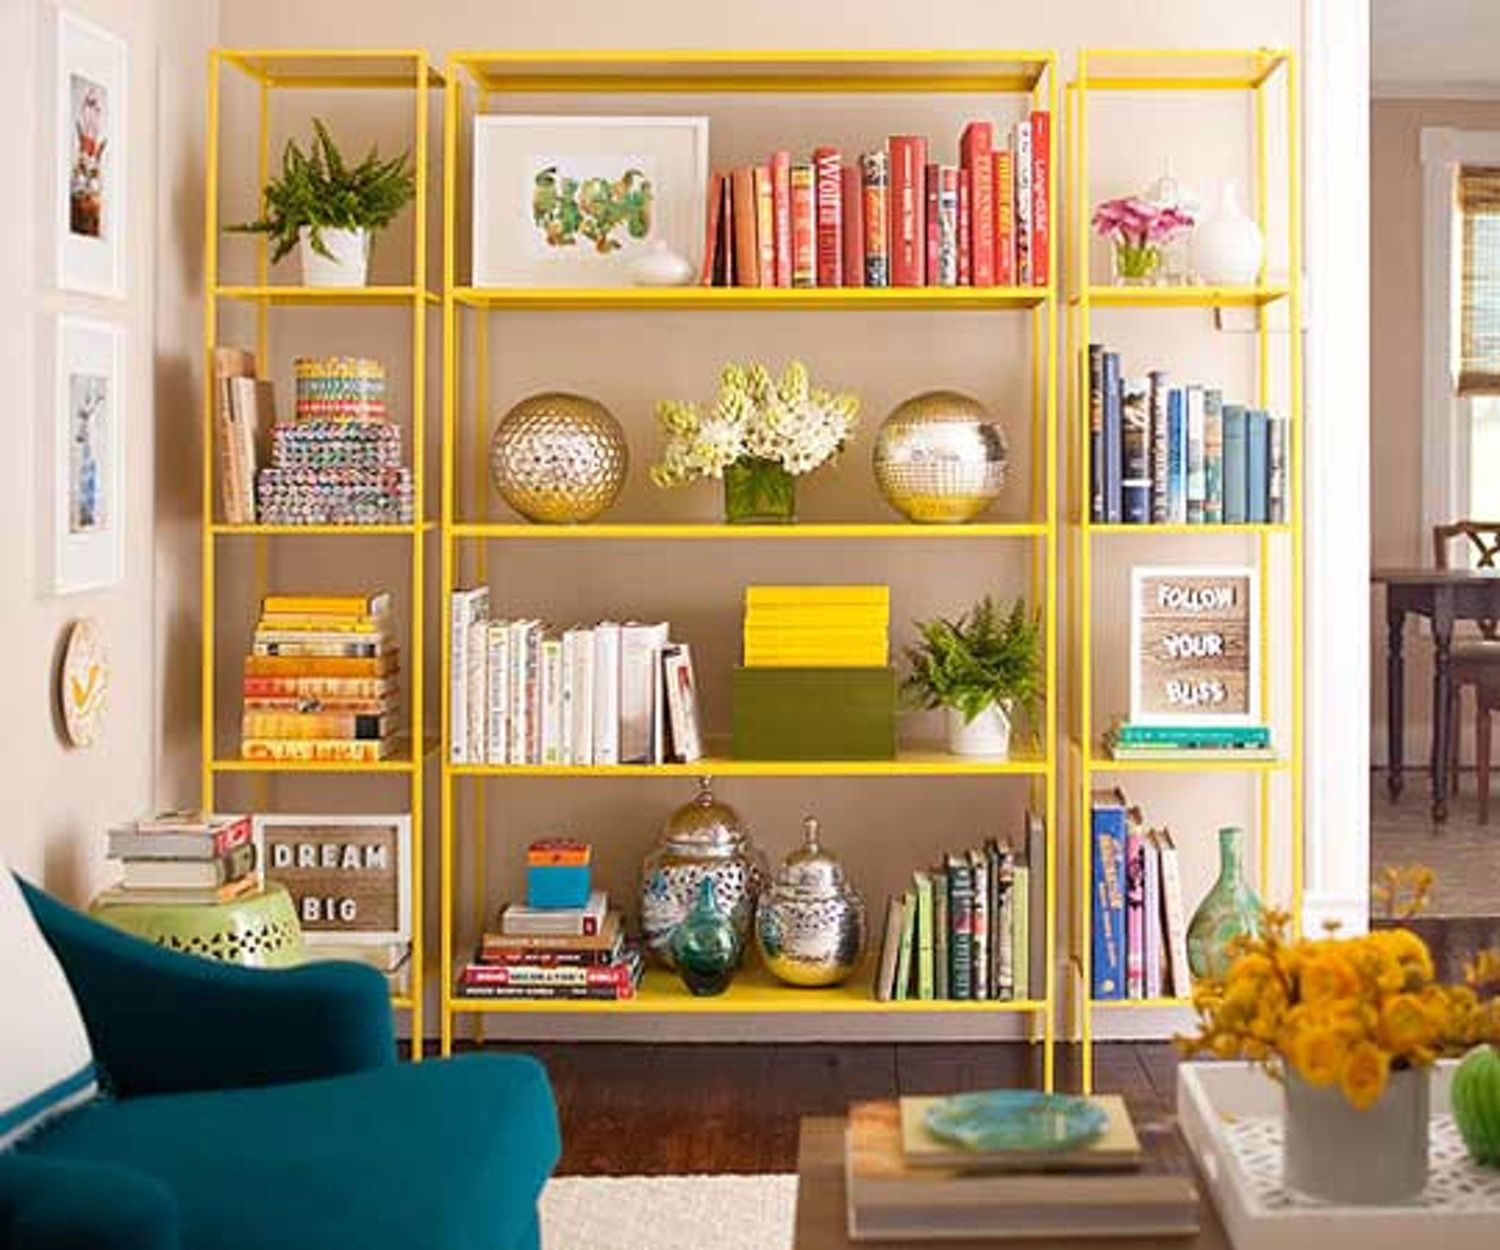 Ikea bookcase with glass doors  DIY Idea Brighten Up Ikea Shelves u Better Homes and Gardens  Ikea